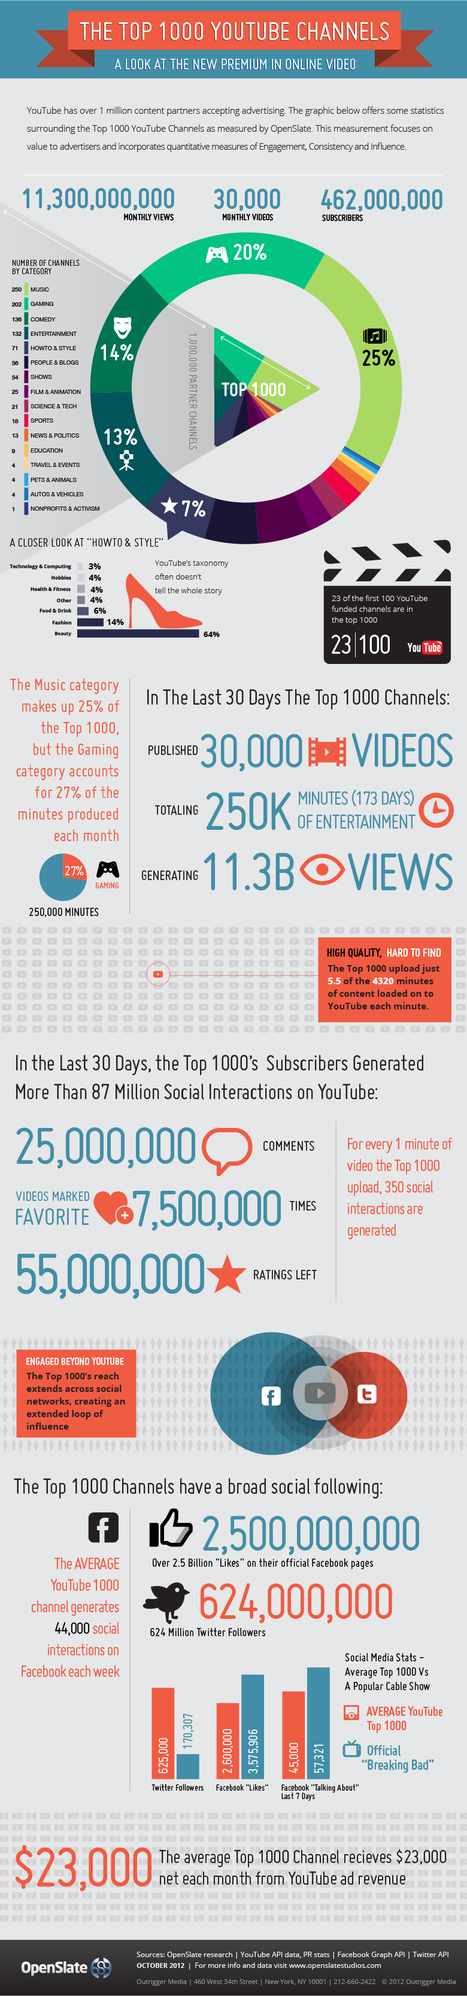 The Top 1000 YouTube Channels [INFOGRAPHIC] | Content Curation: Emerging Career | Scoop.it